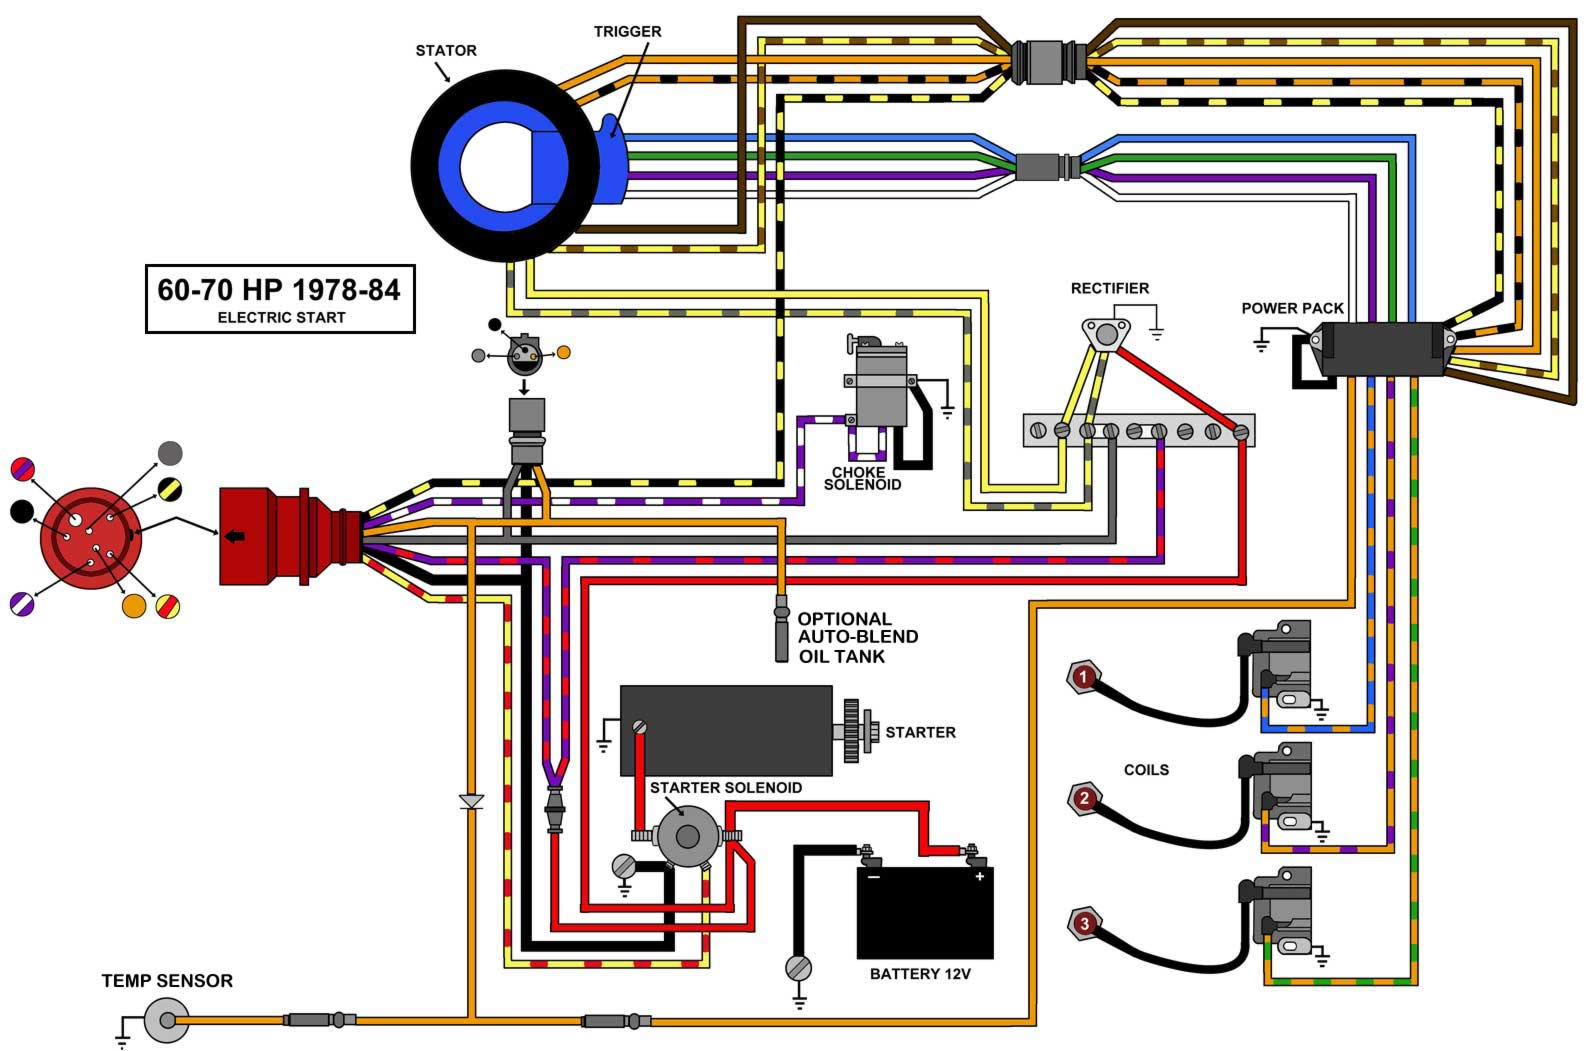 78 84_3 CYL_EL wiring tach from johnson controls page 1 iboats boating forums Toggle Switch Tilt and Trim at gsmx.co